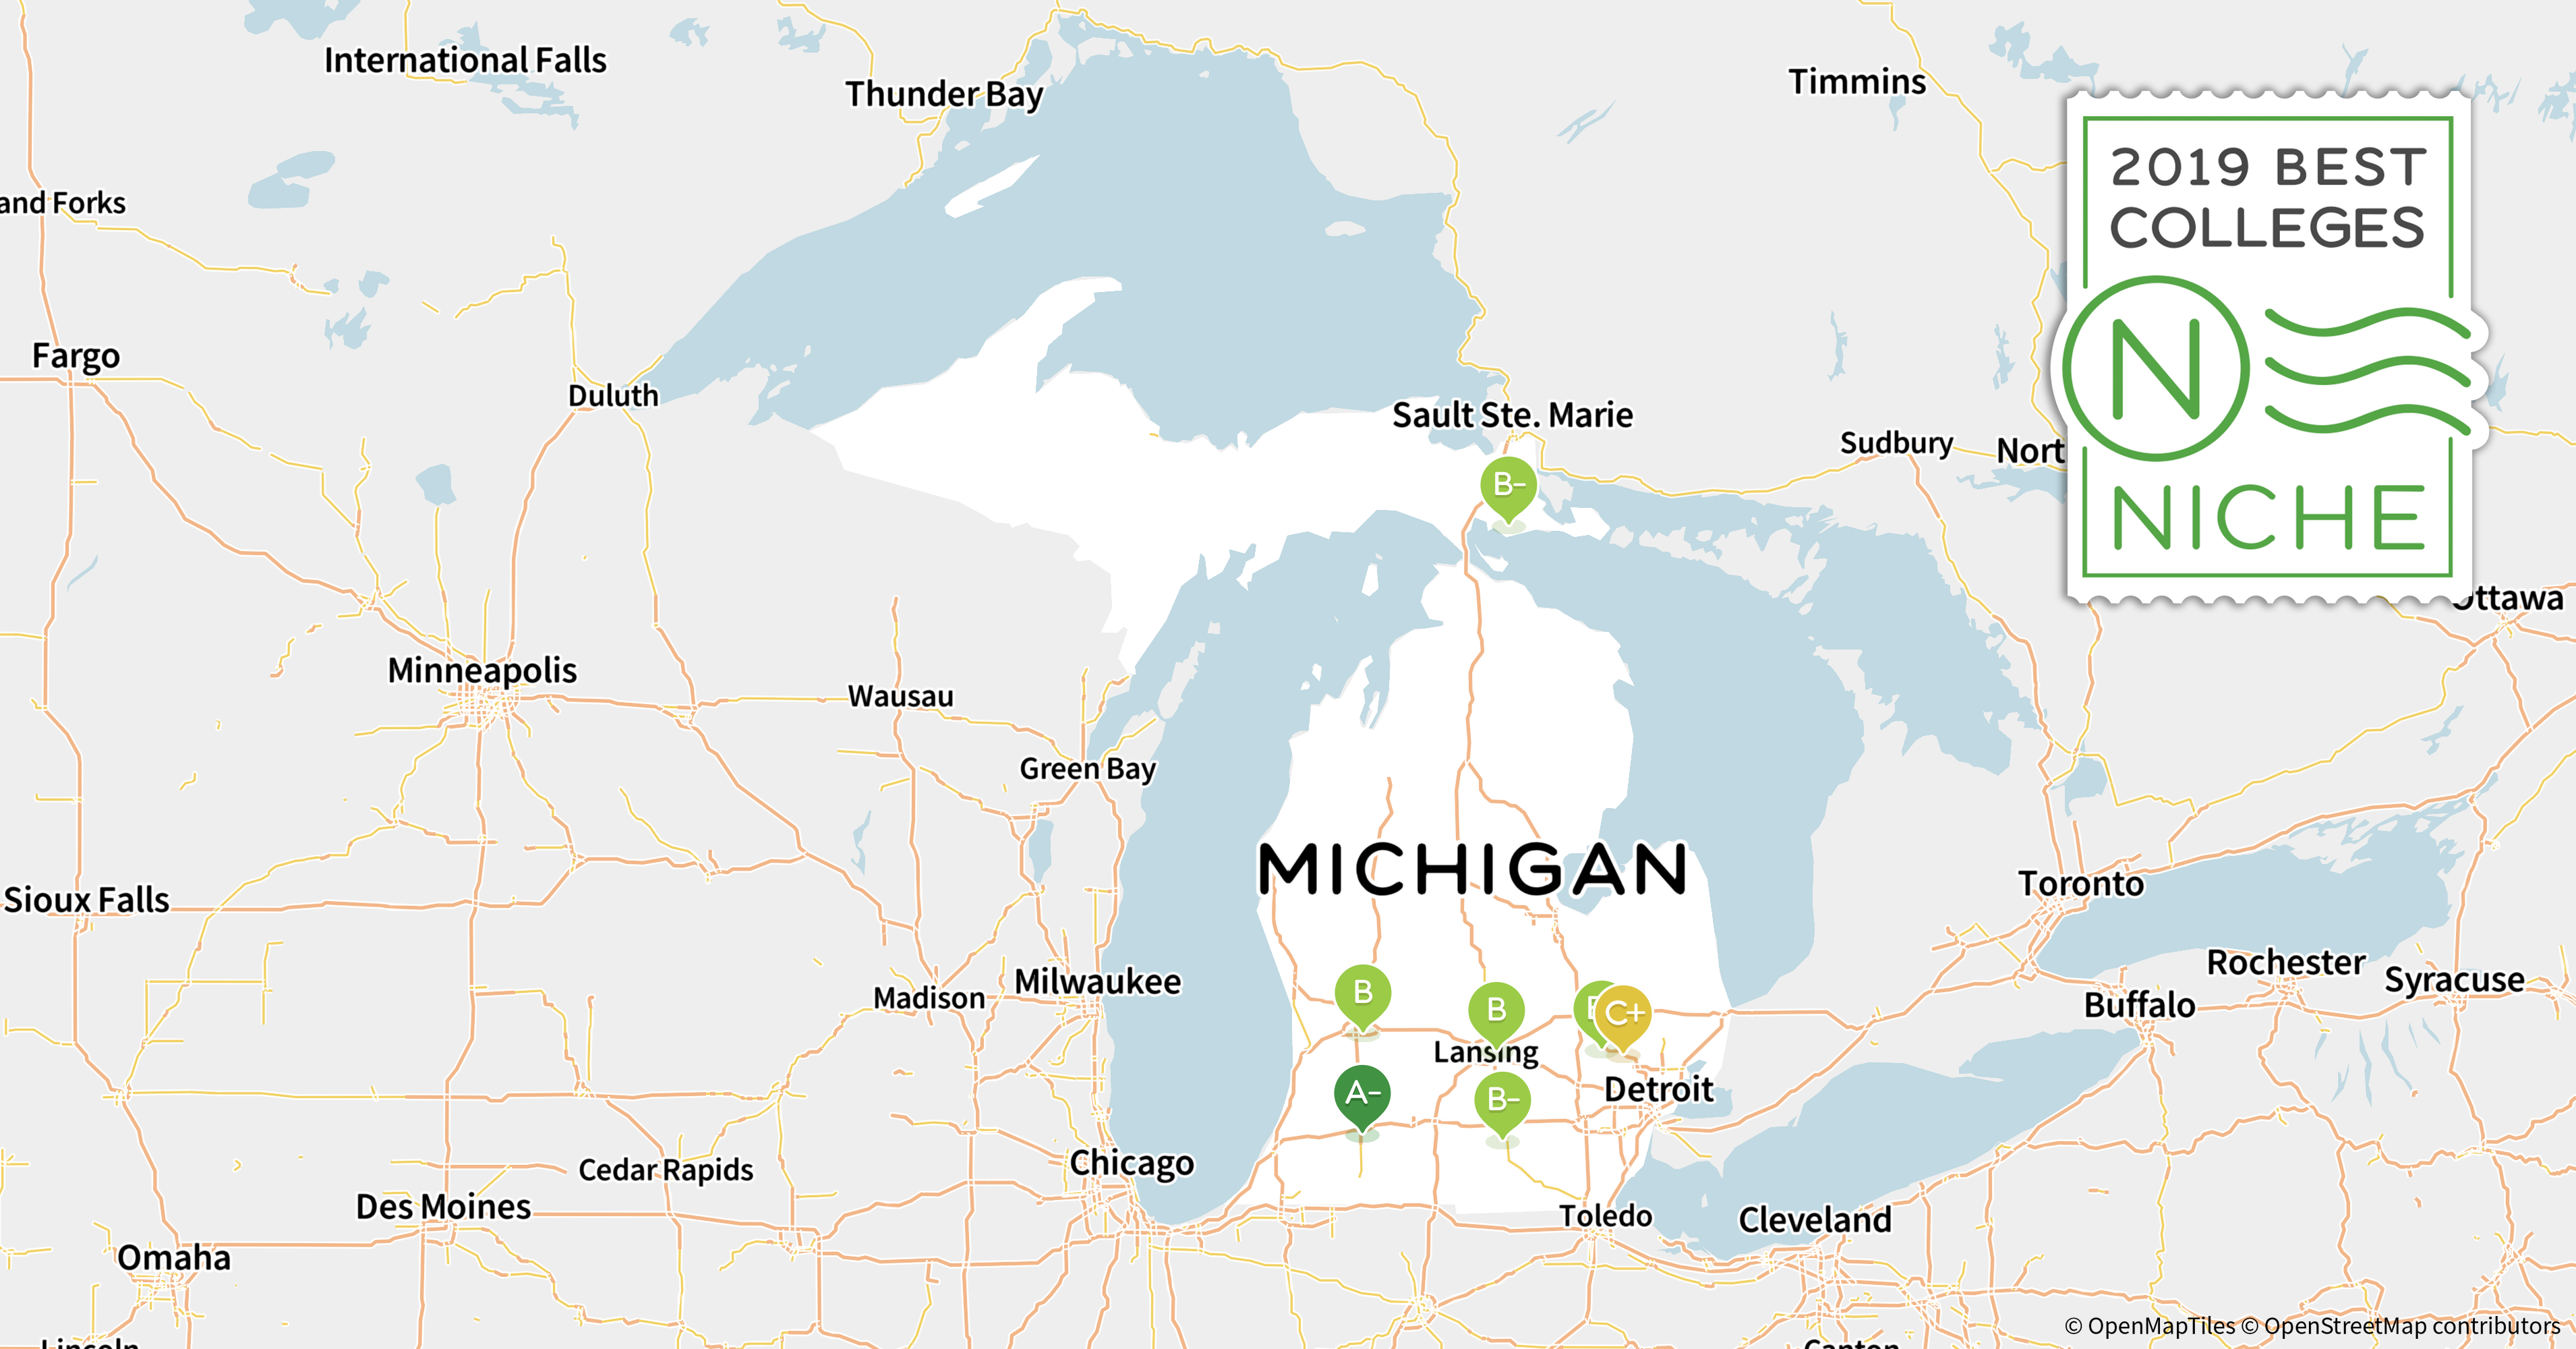 2019 Best Colleges in Michigan - Niche